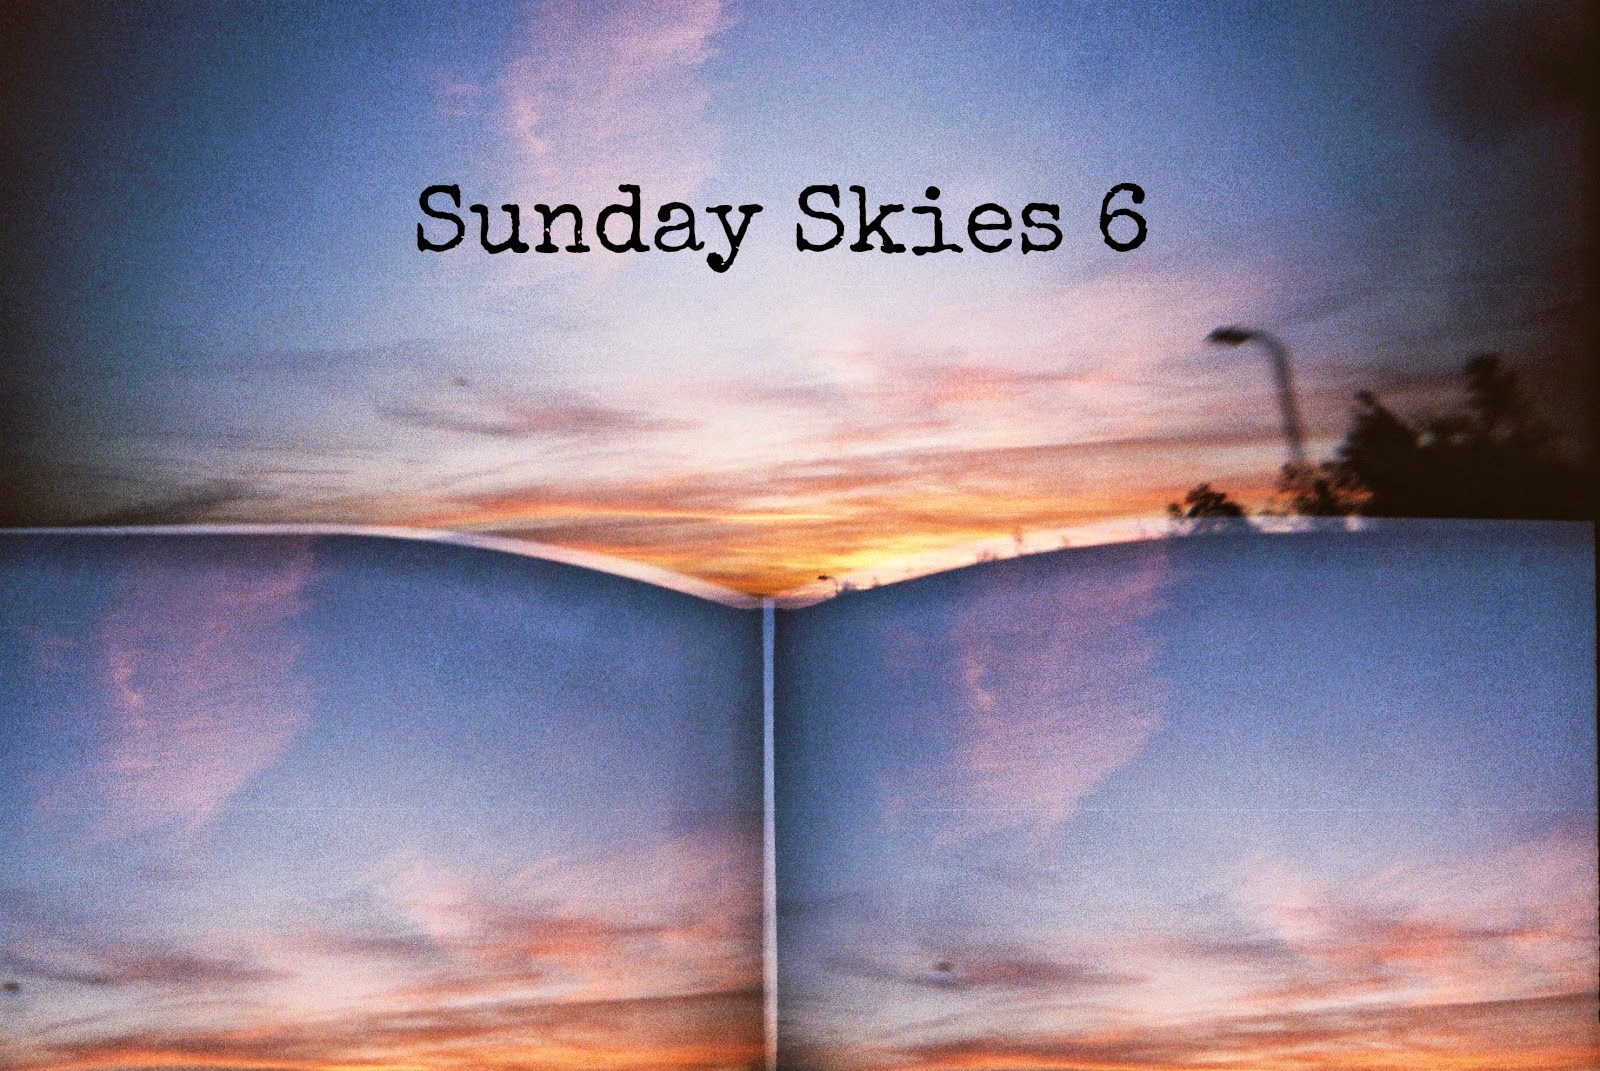 http://talesonfilm.blogspot.co.uk/2014/05/sunday-skies_25.html